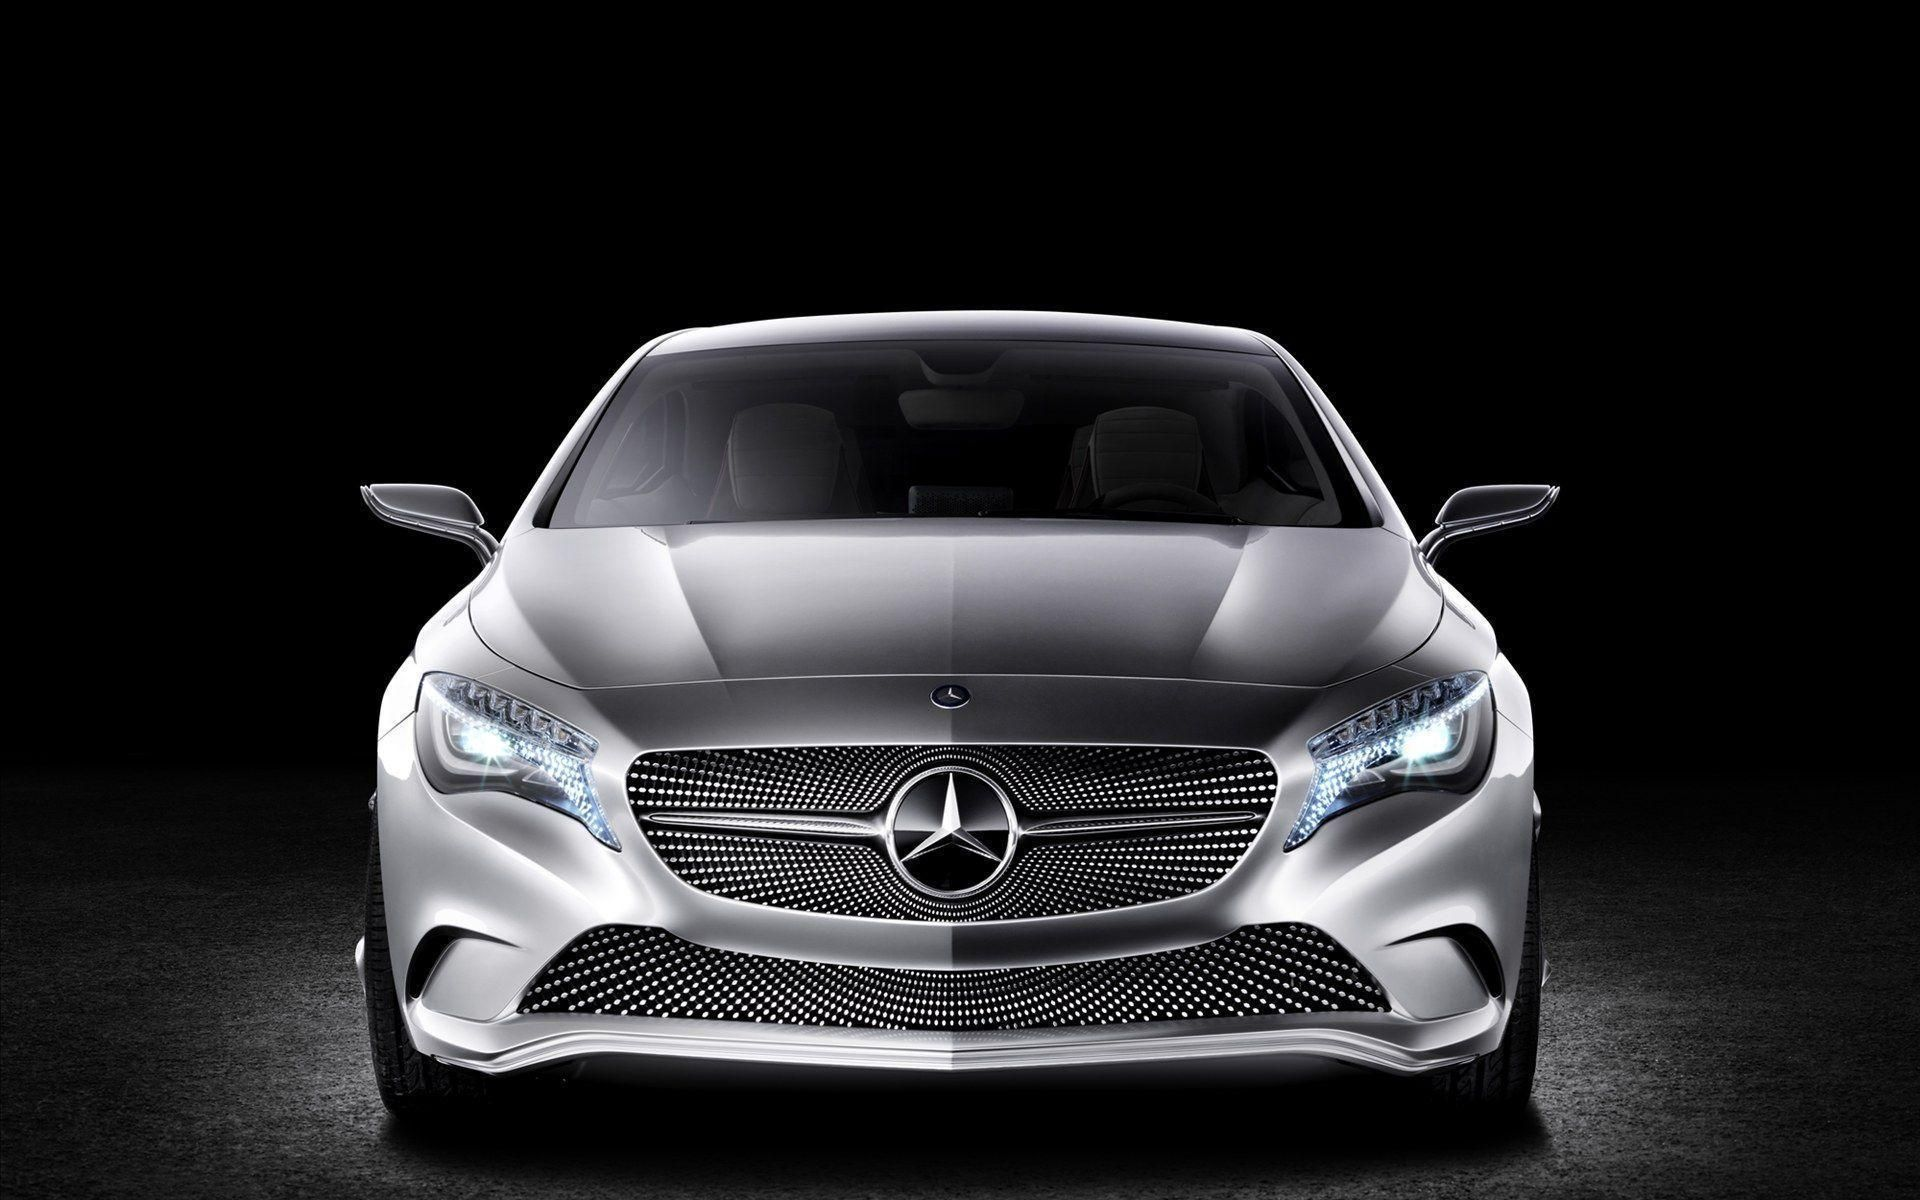 Mercedes Benz Free Full Hd Wallpapers 5 Ios Wallpaper Mercedes Benz Mercedes Mercedes Classe A Wallpaper mercedes benz logo car salon